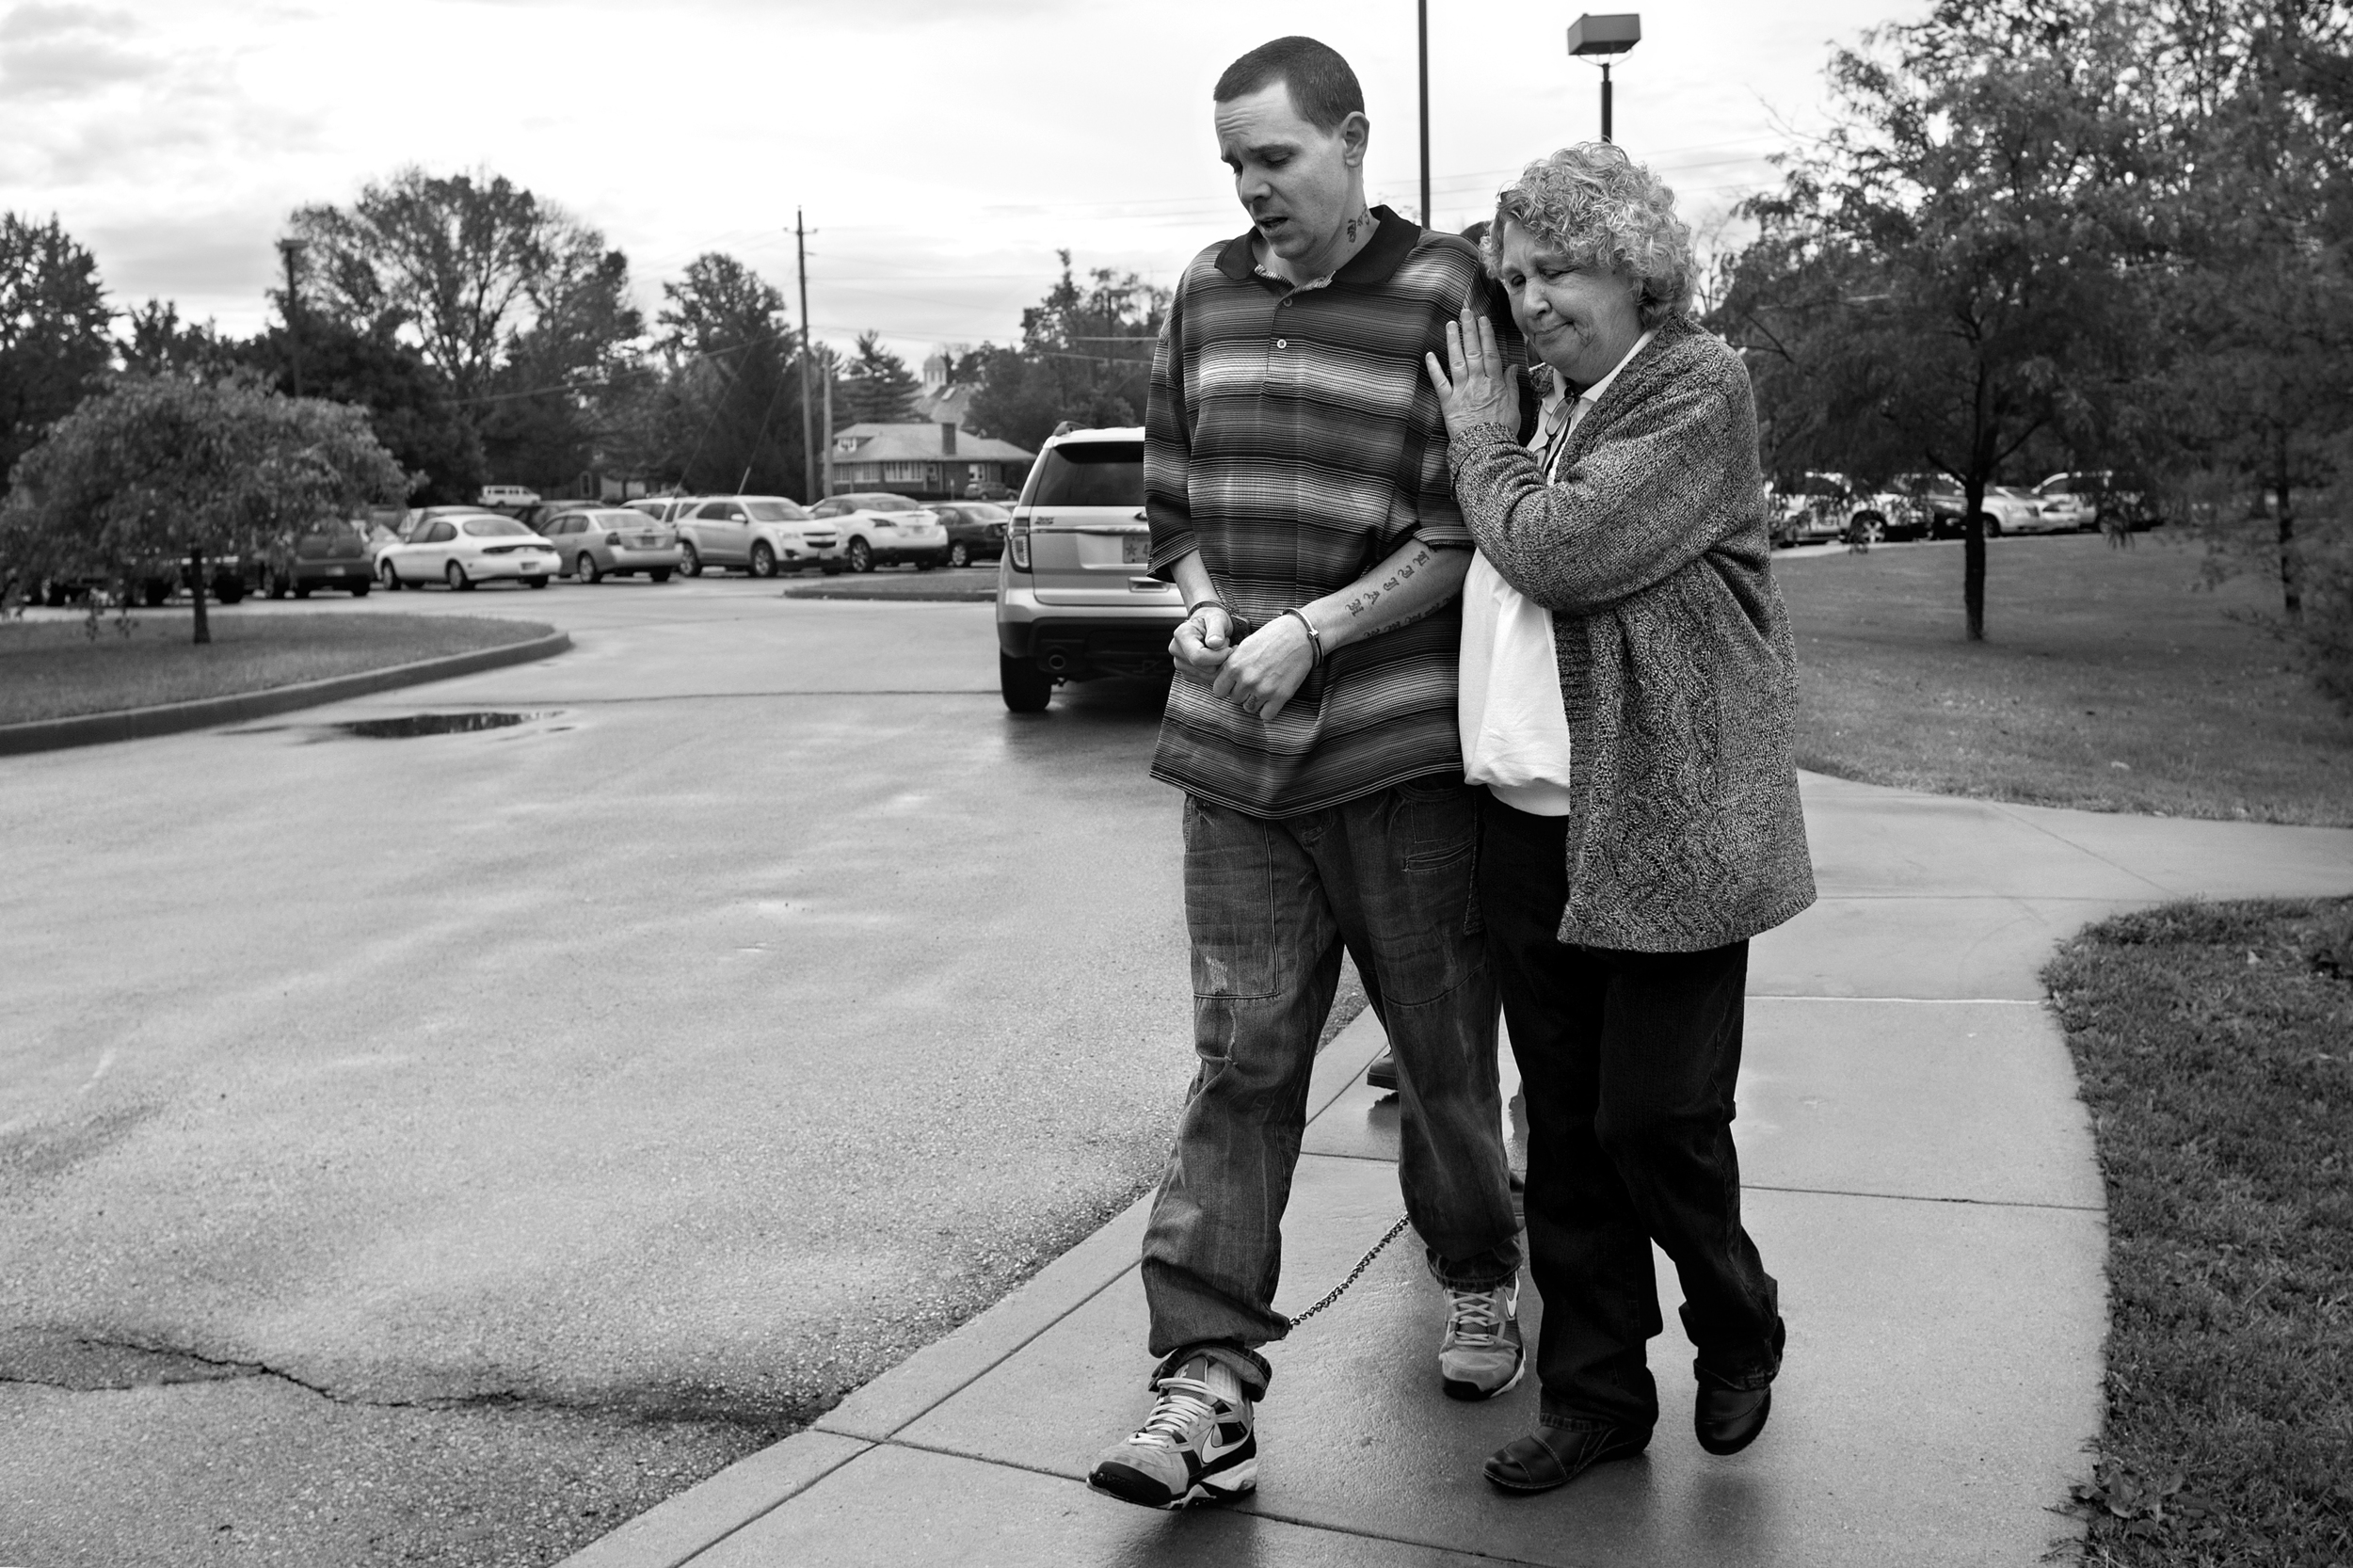 """Following Paul's release from jail, Lynda is relieved as she walks with her handcuffed son who is to be admitted at the Richmond State Hospital. """"I'm safe and he's safe,"""" she said. """"He's not behind bars. He's going to get his proper care and his proper treatment now."""""""